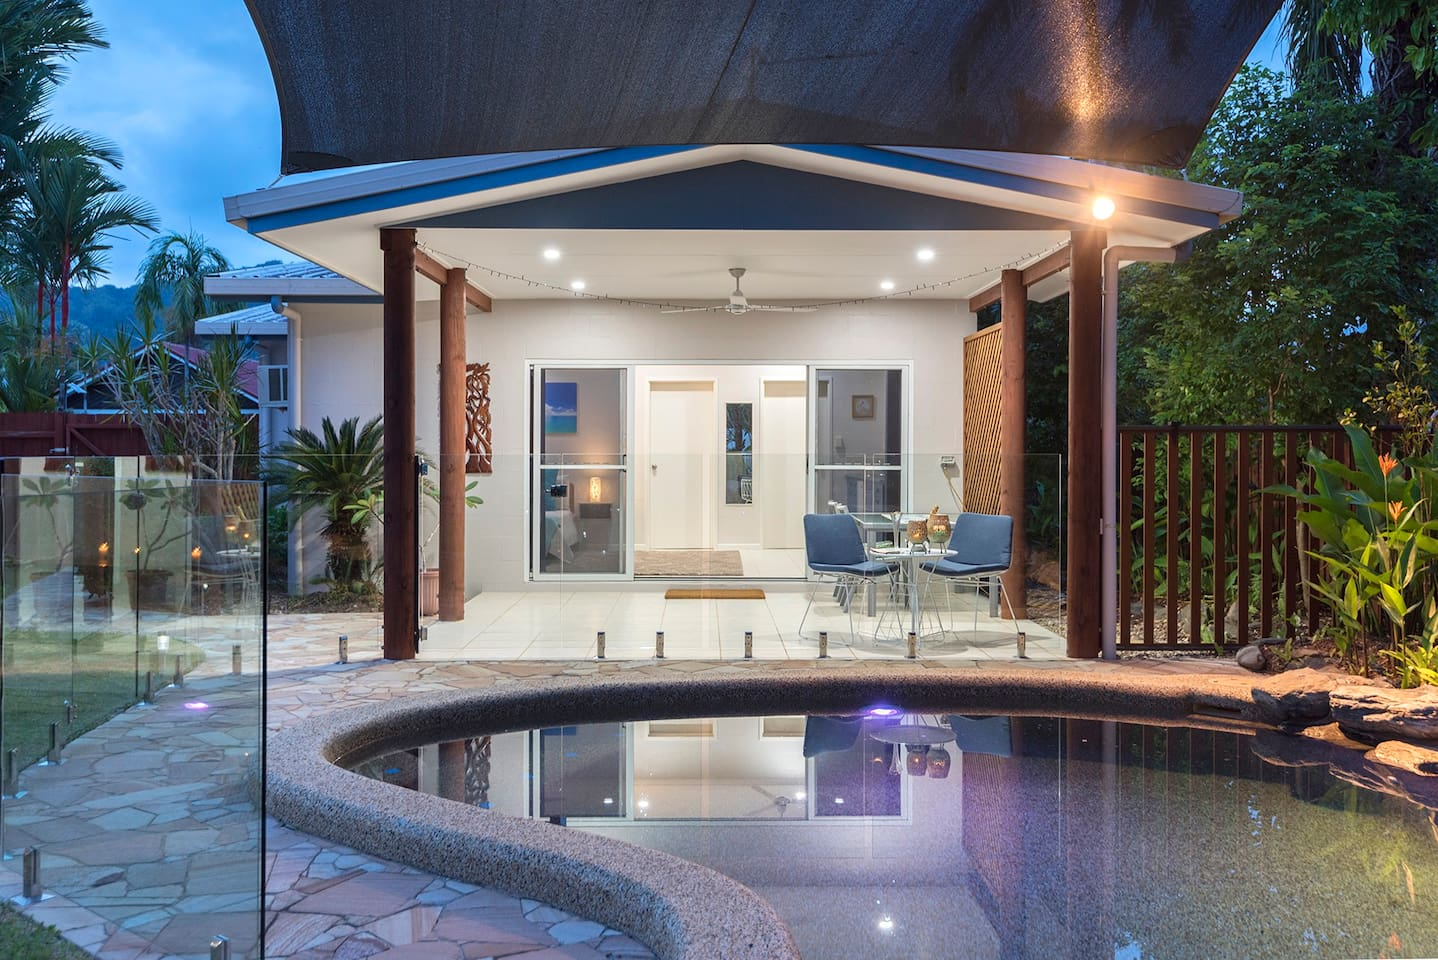 A generous private patio with lounges & seating for meals joins your accommodation to the pool.